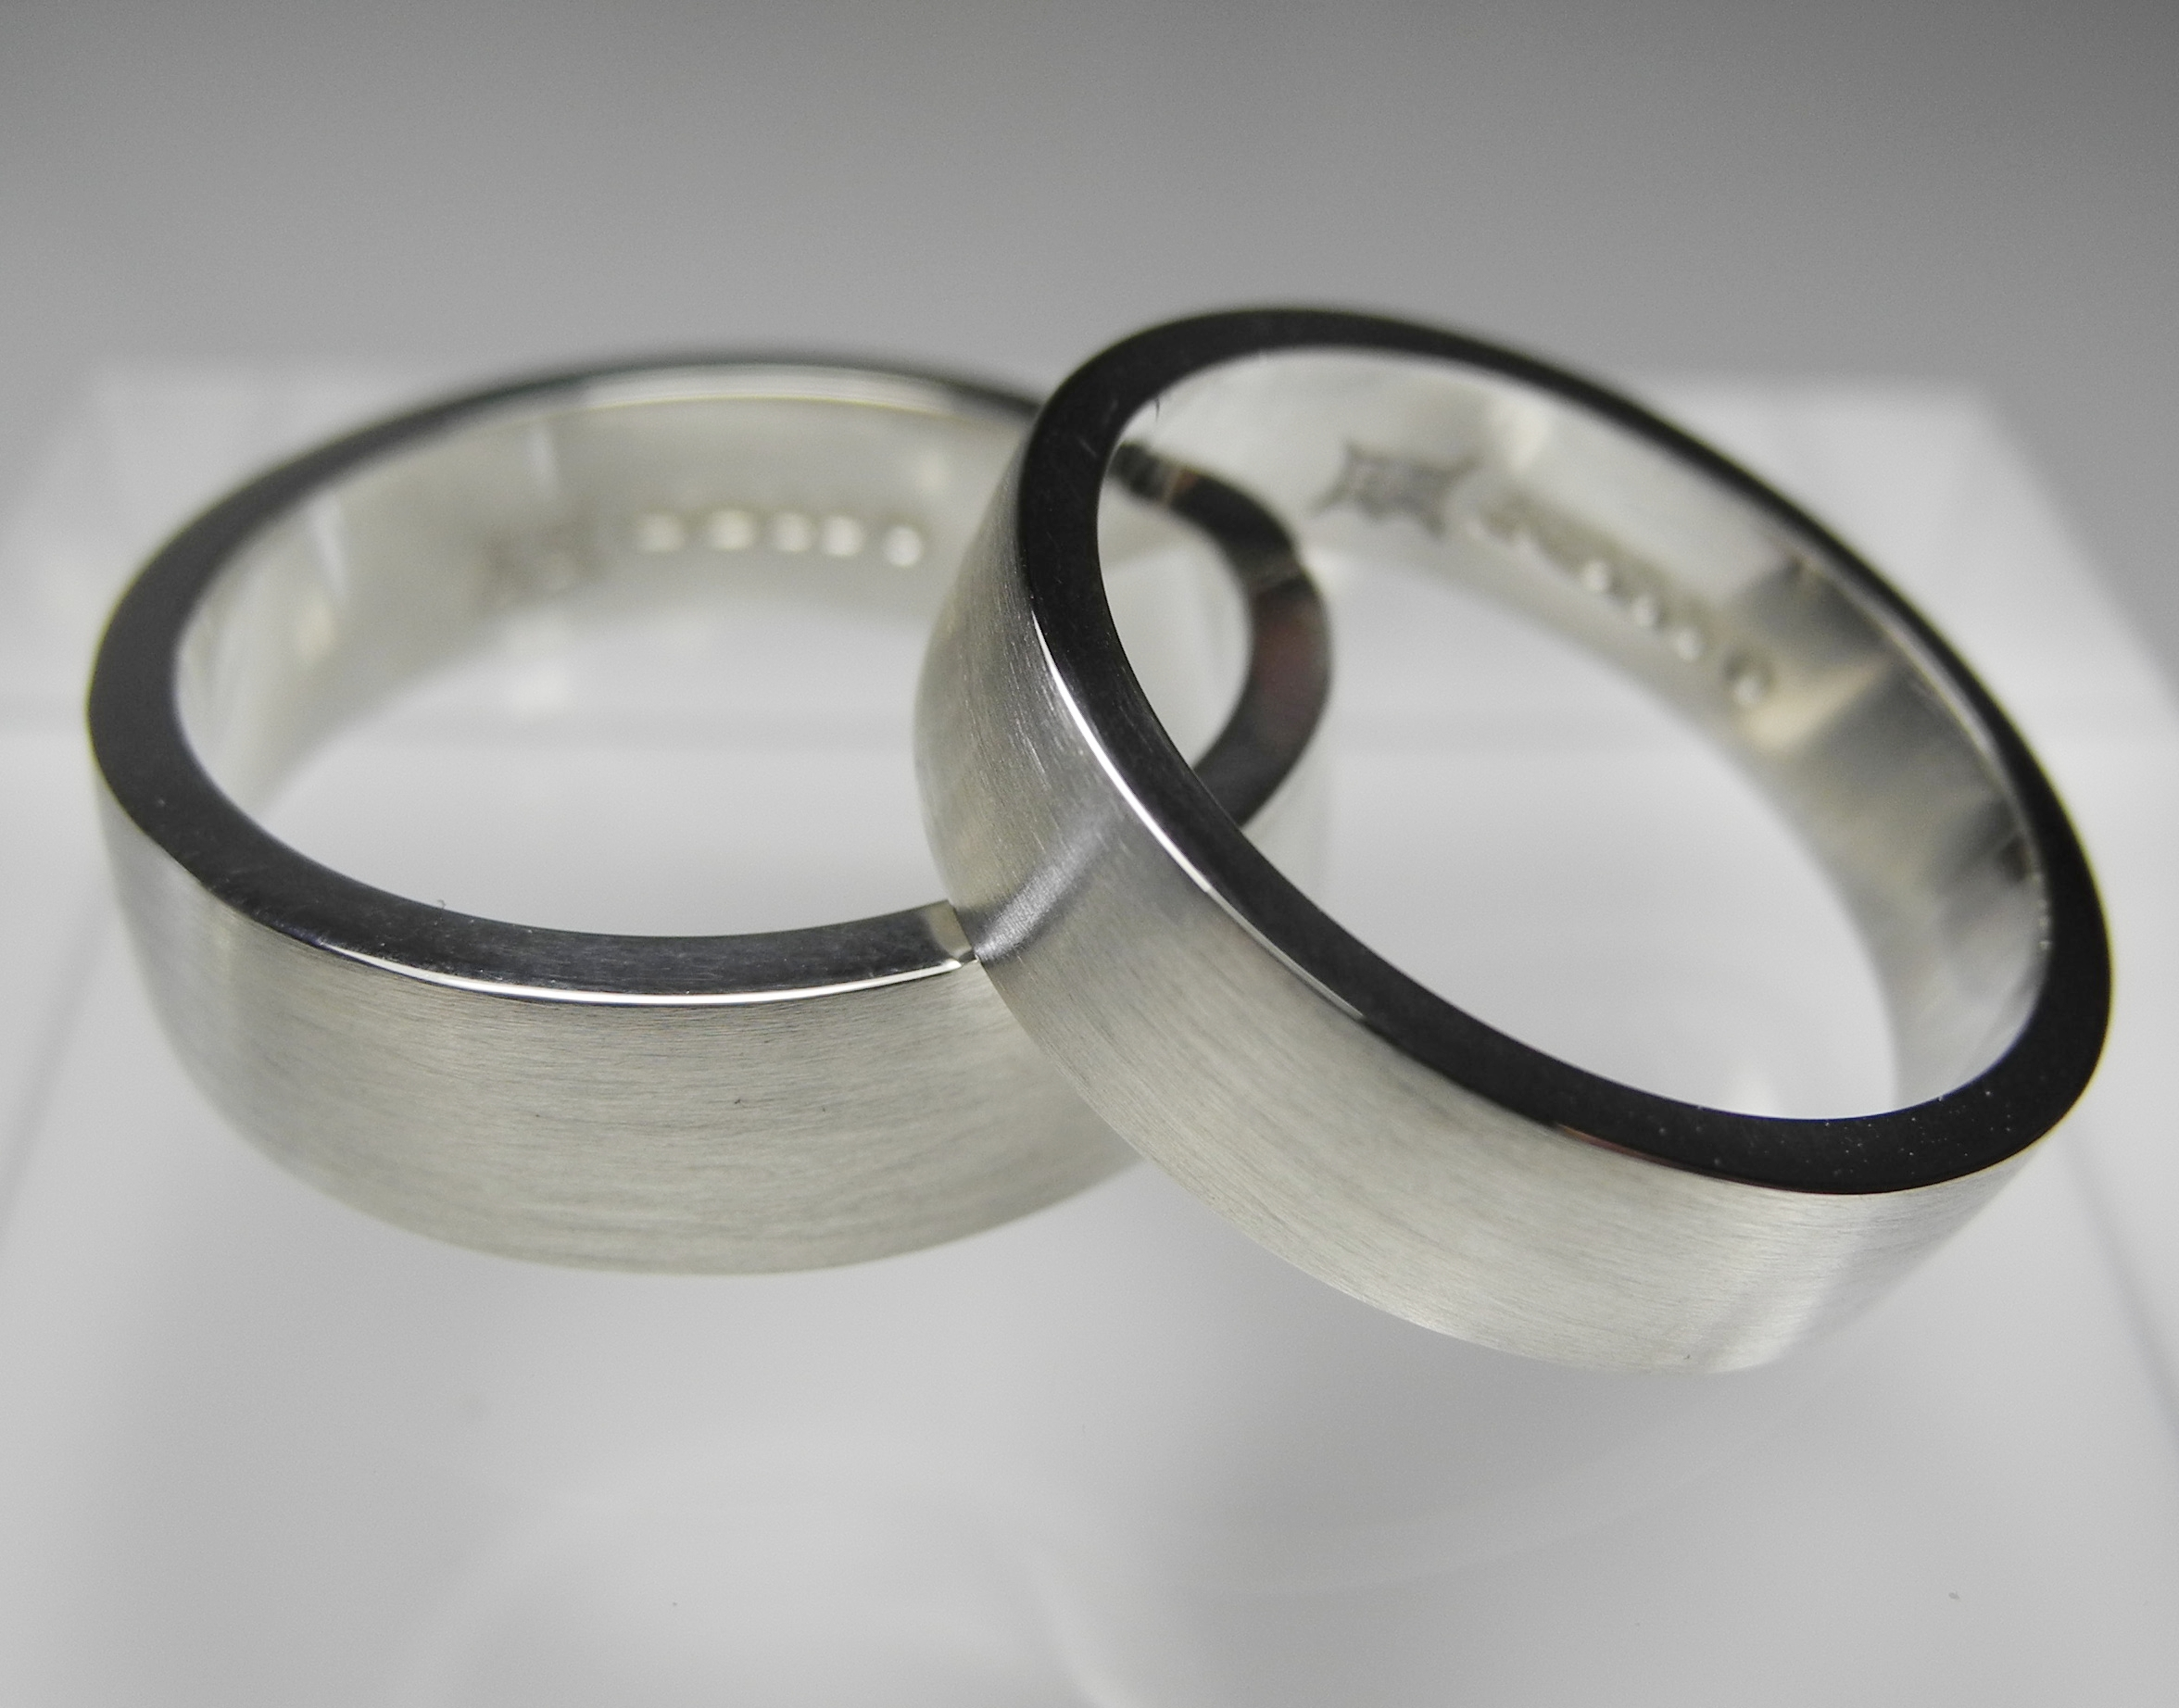 Flat profile wedding bands, mirror polished inside and satinised outside